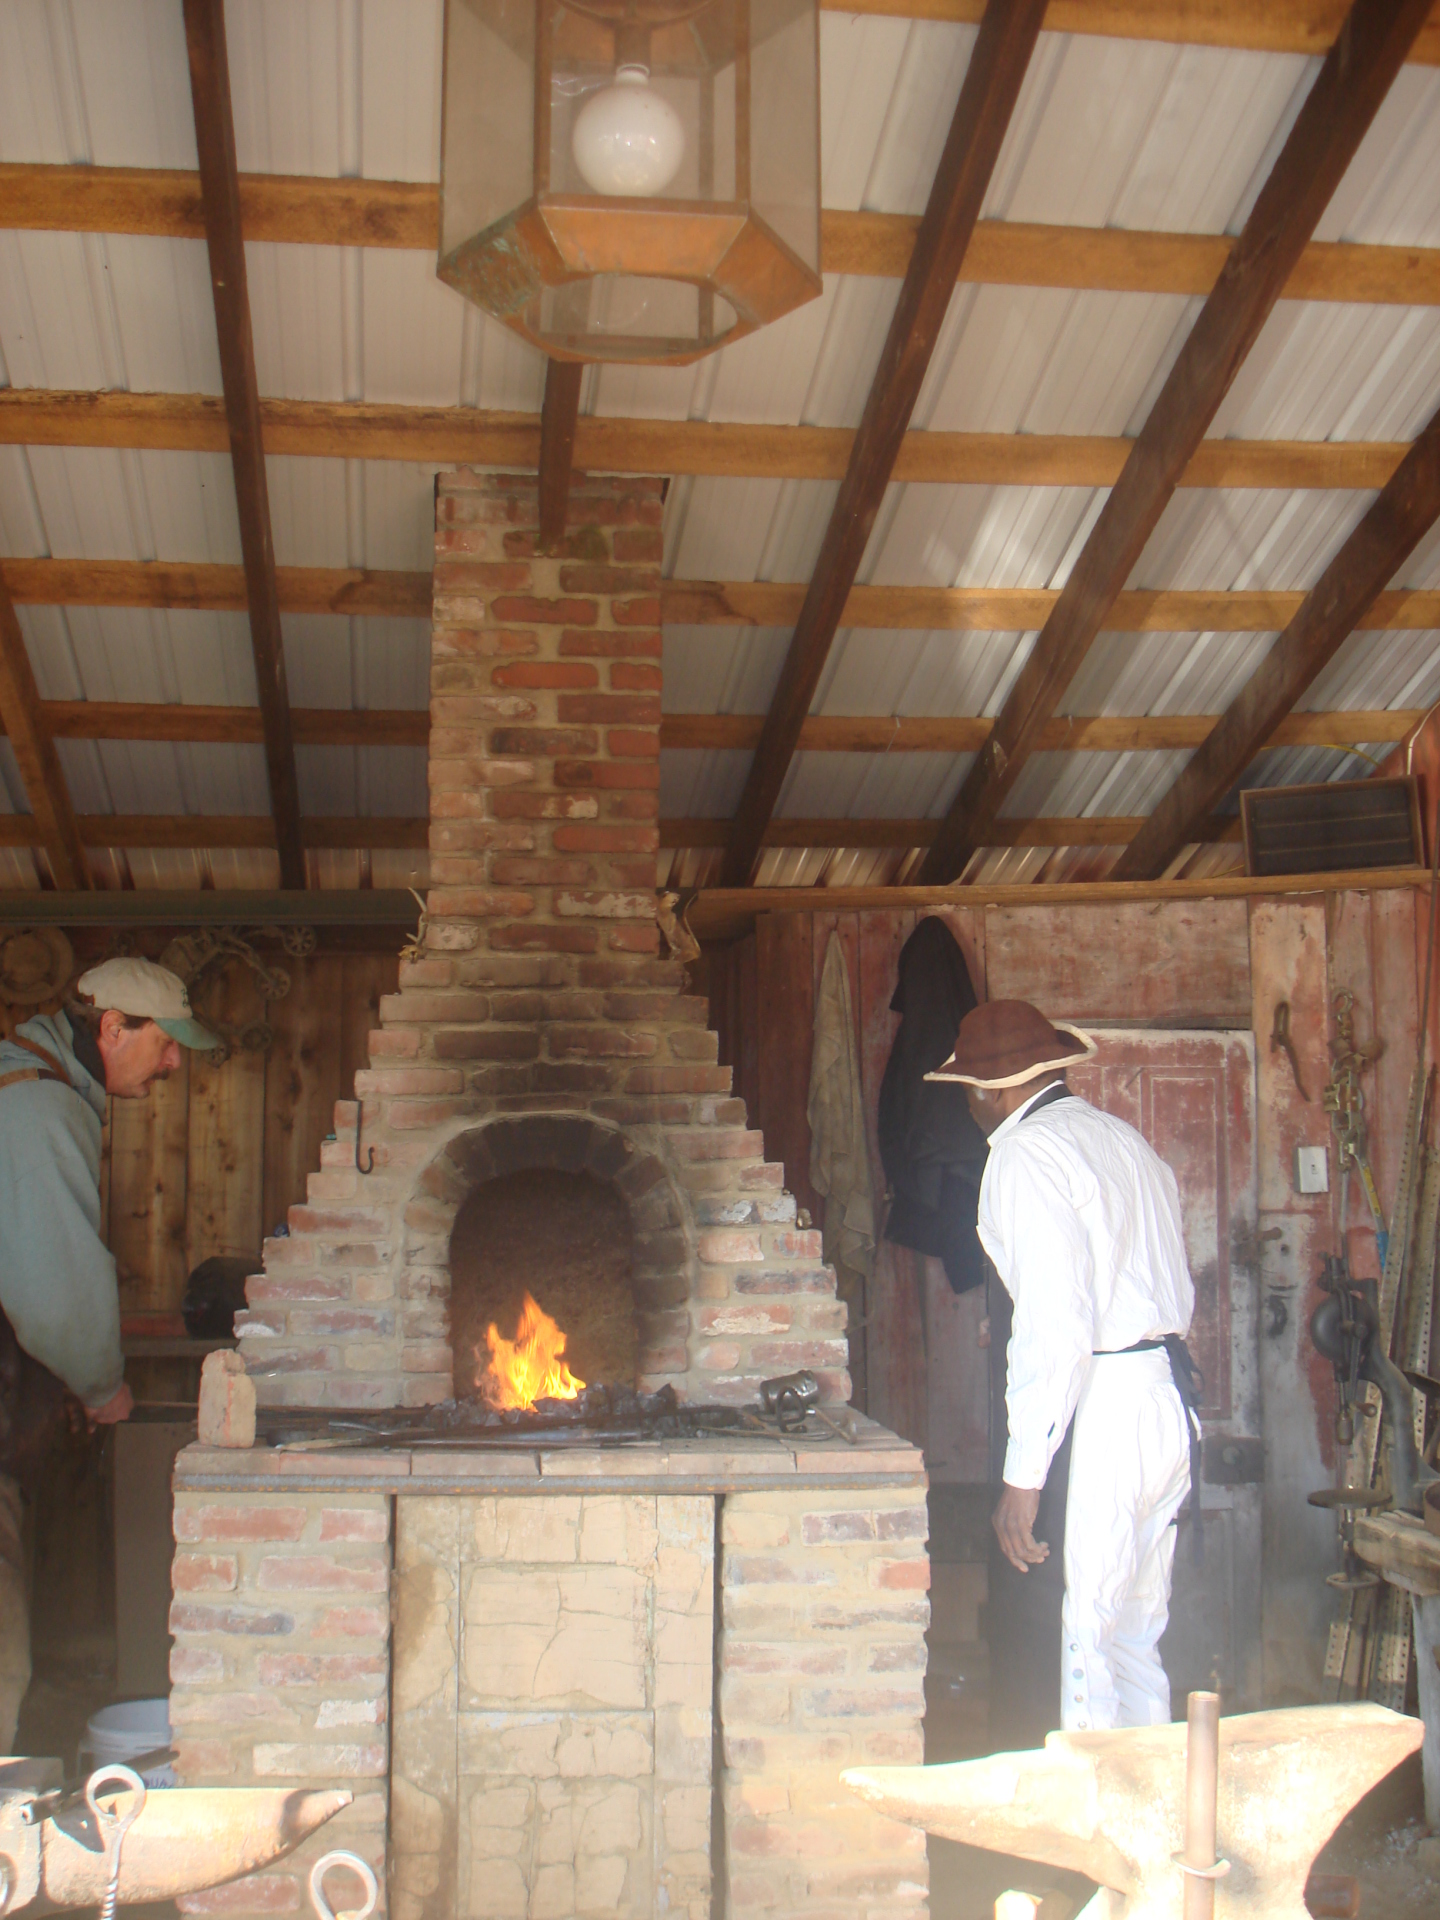 Working Blacksmith shoppe